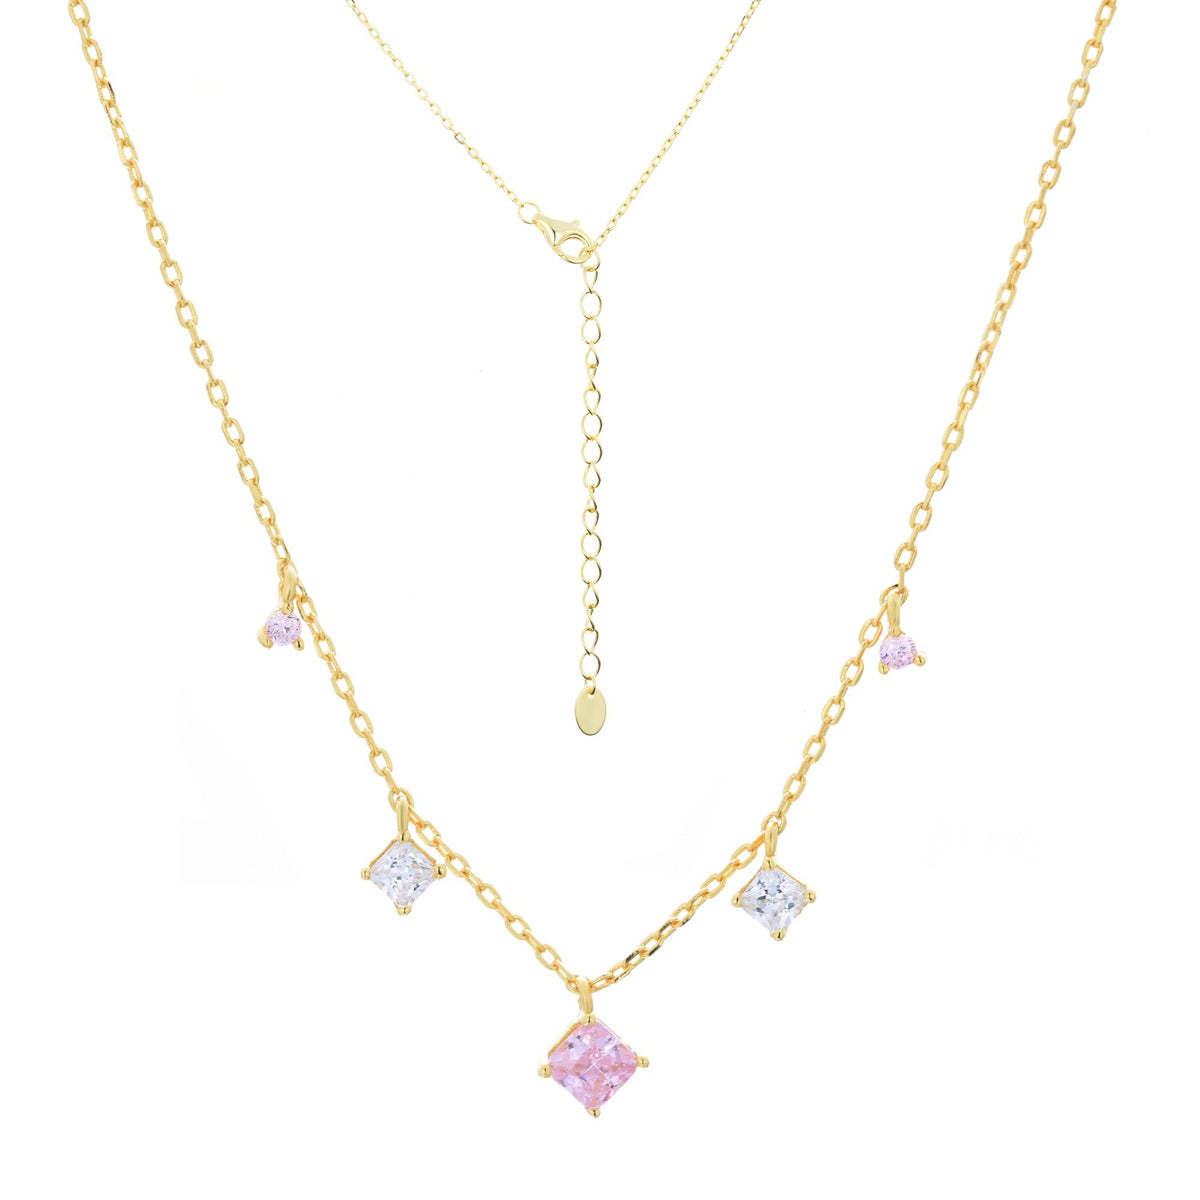 Ferentina | Cupcake Necklace | 925 Silver | White & Pink CZ | 18K Gold Plated